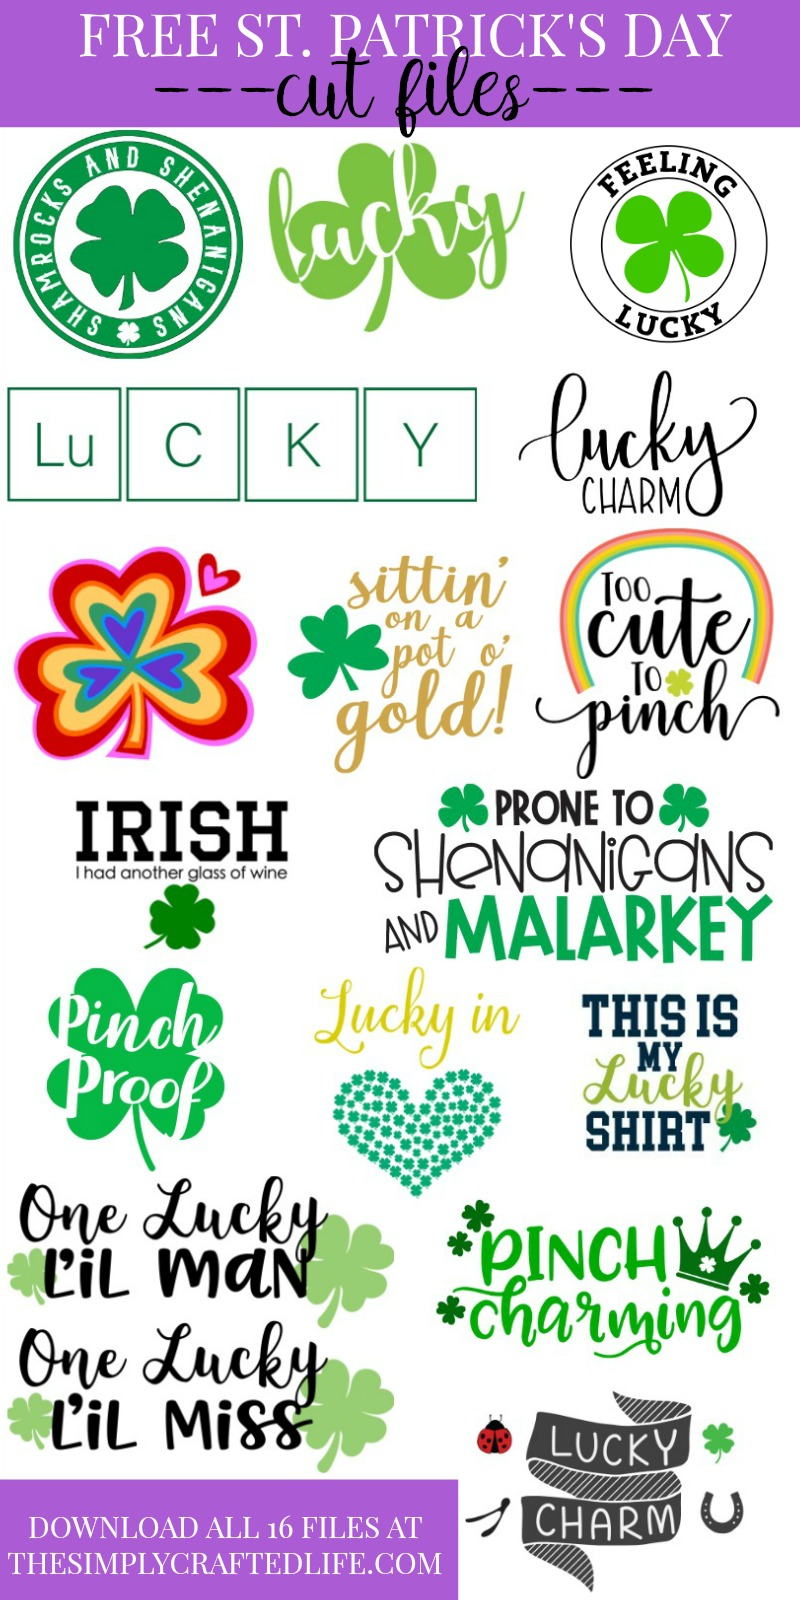 65a65300 Free St. Patrick's Day SVG + 15 Other Free Cut Files -